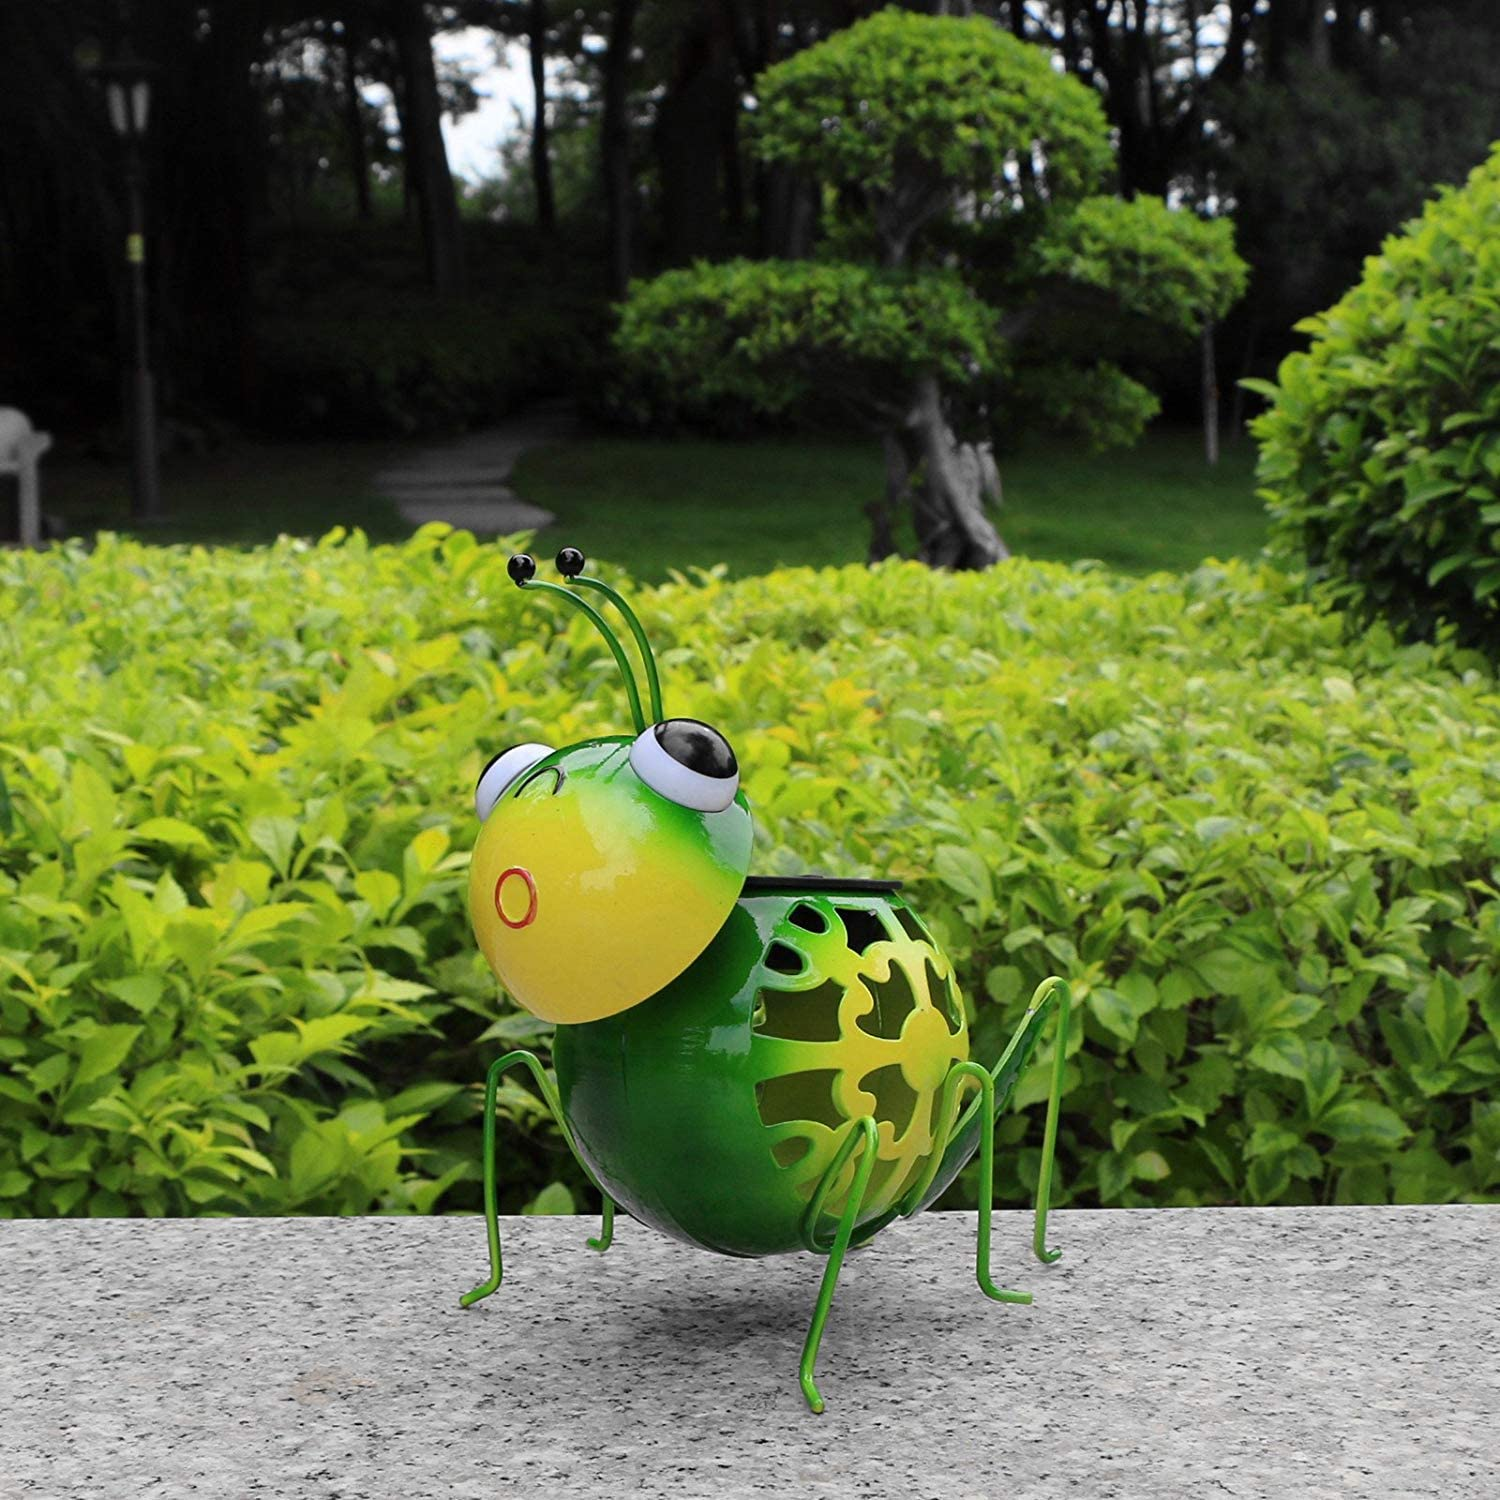 Metal Garden Art,Steel Green Grasshopper Figurines with Solar Lights for Lawn Patio Outdoor Garden Decor and Ornaments,Outdoor and Indoor Statue